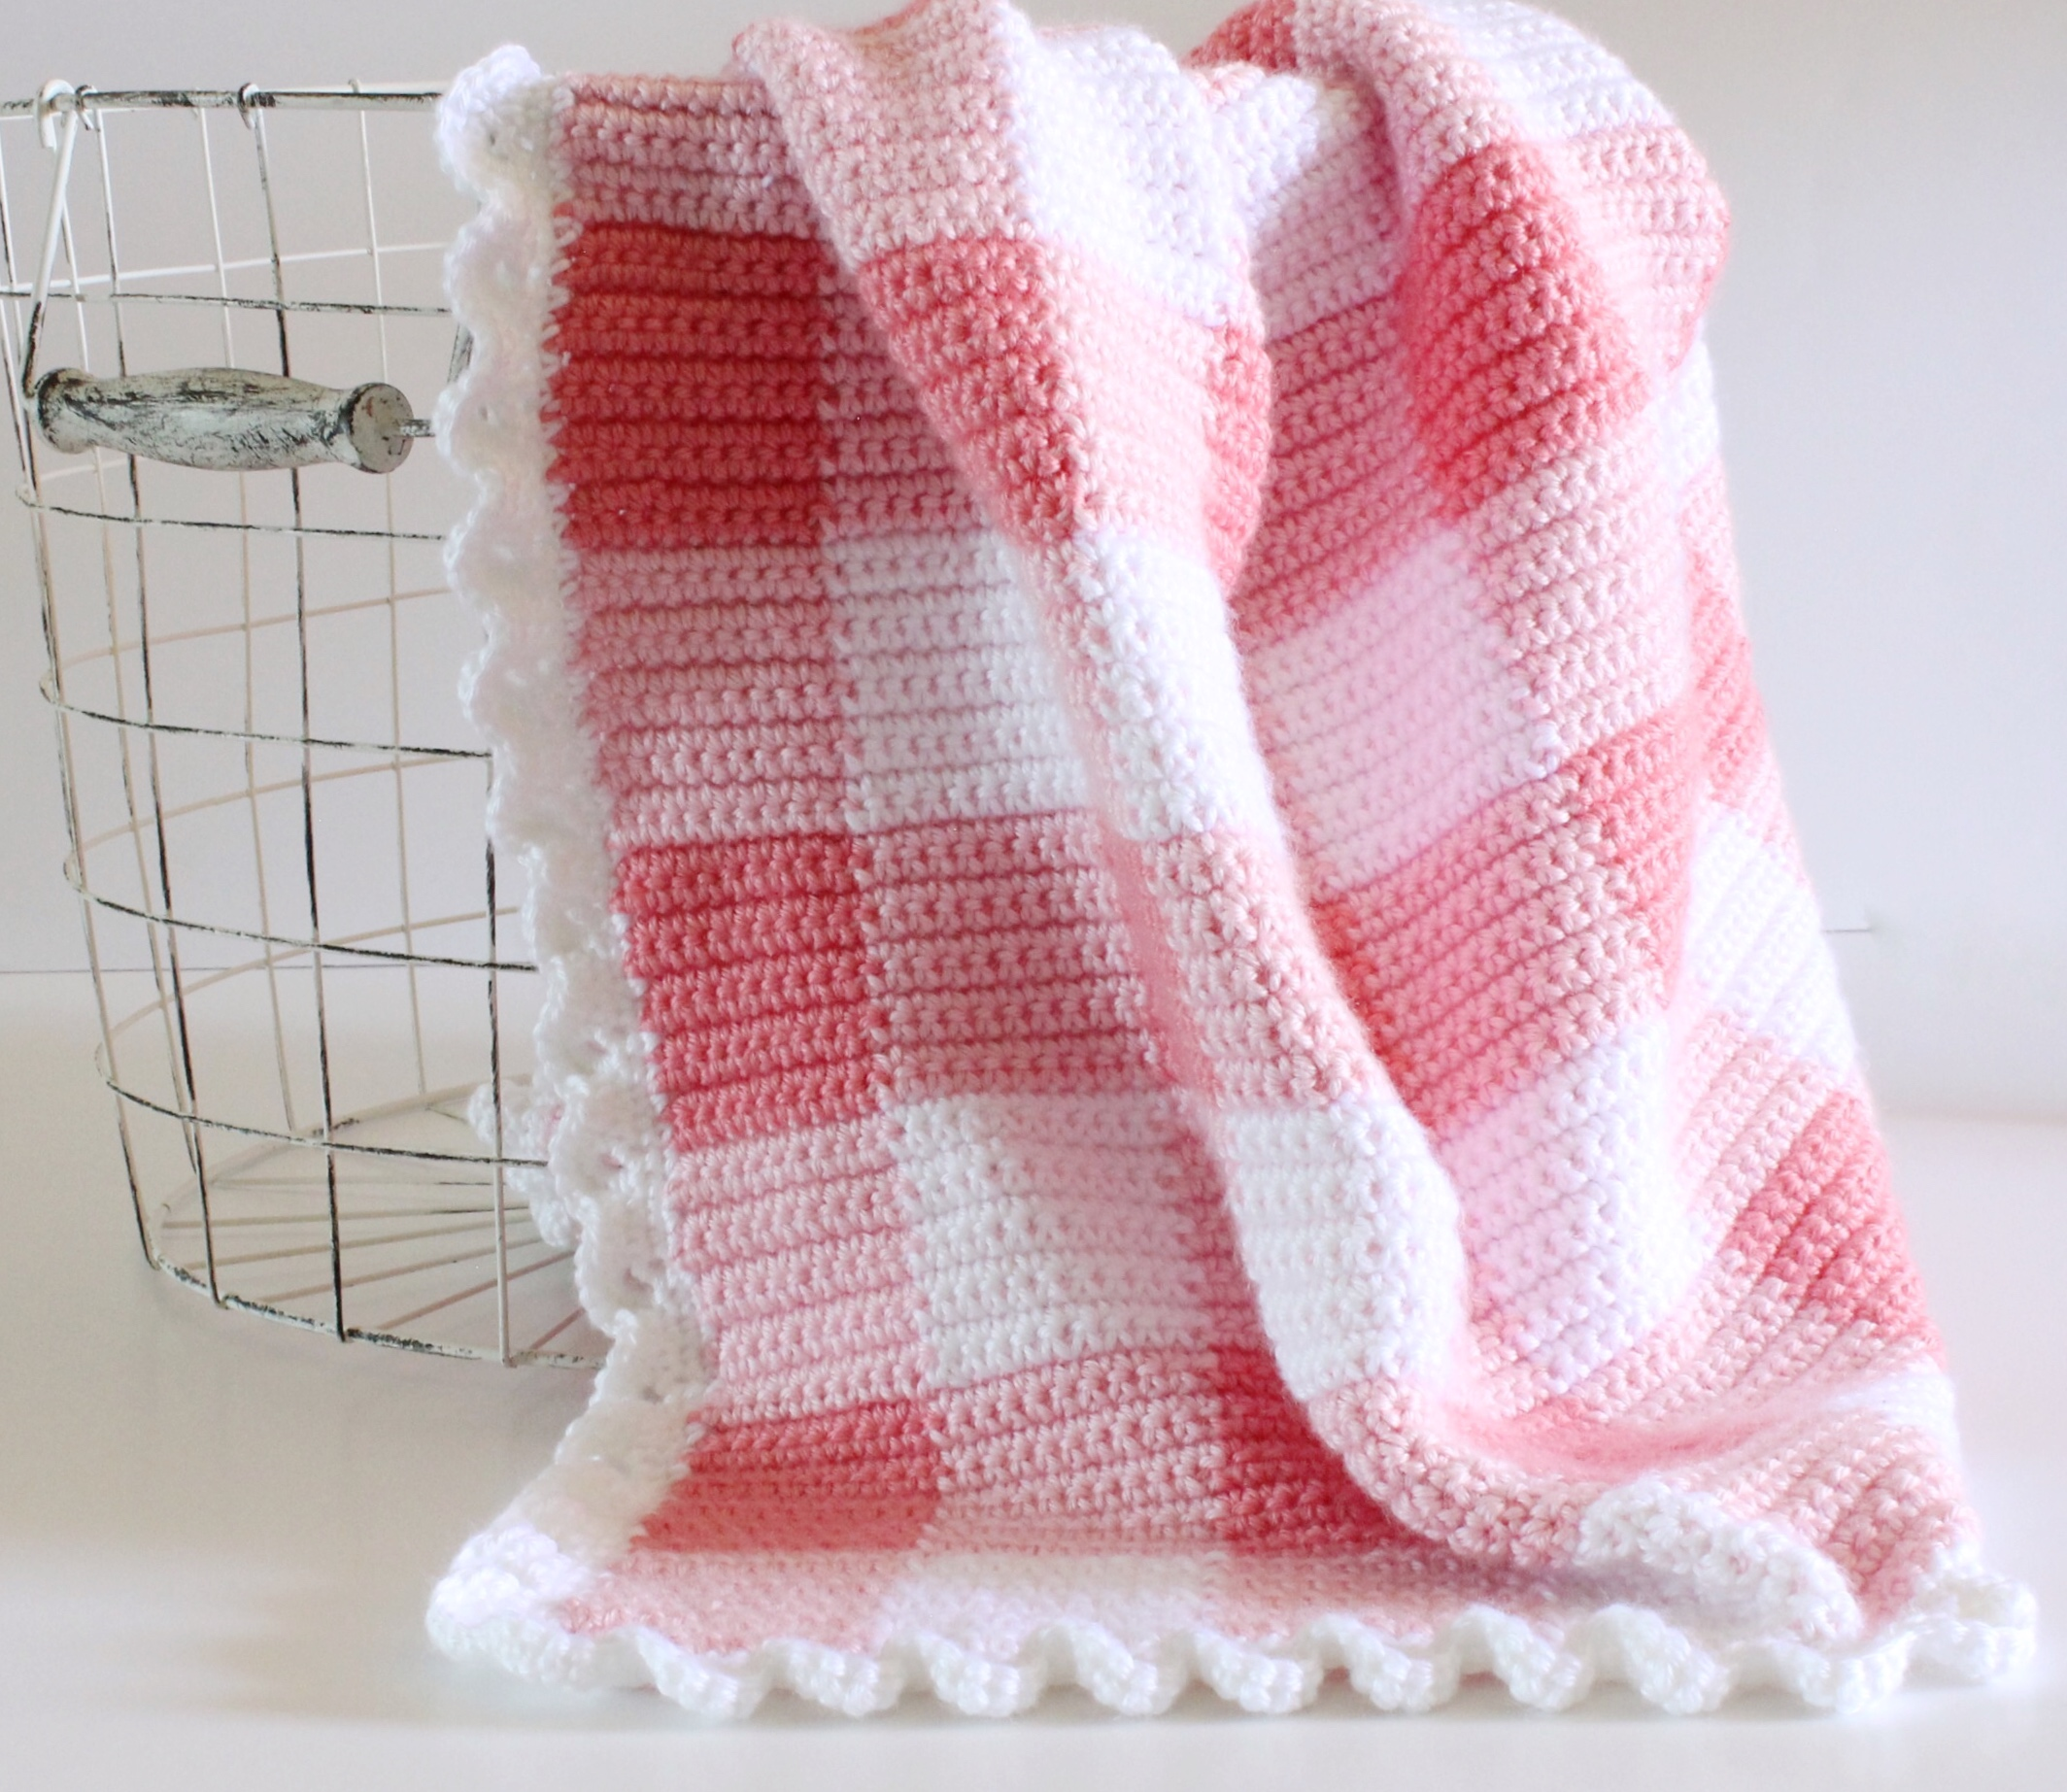 Crochet Pink Gingham Blanket Daisy Farm Crafts